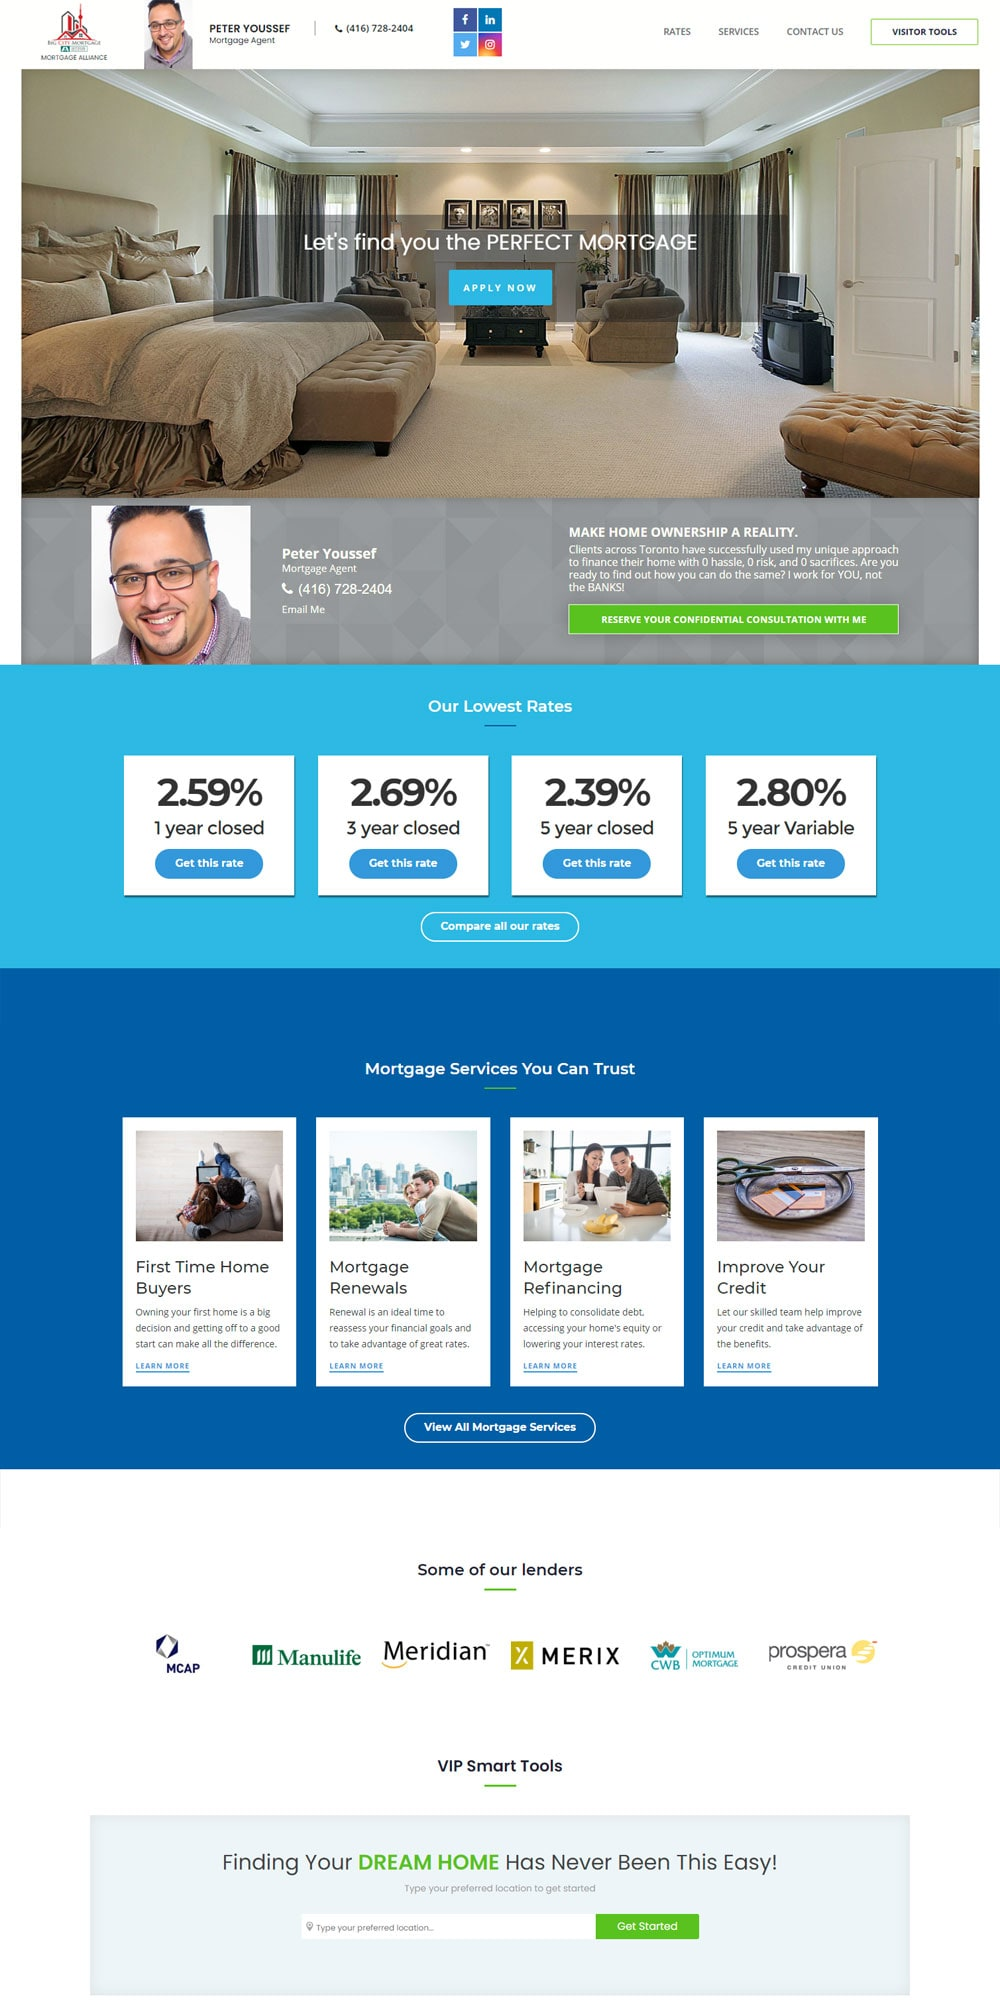 Real Estate Agent Website Design: Peter Youssef